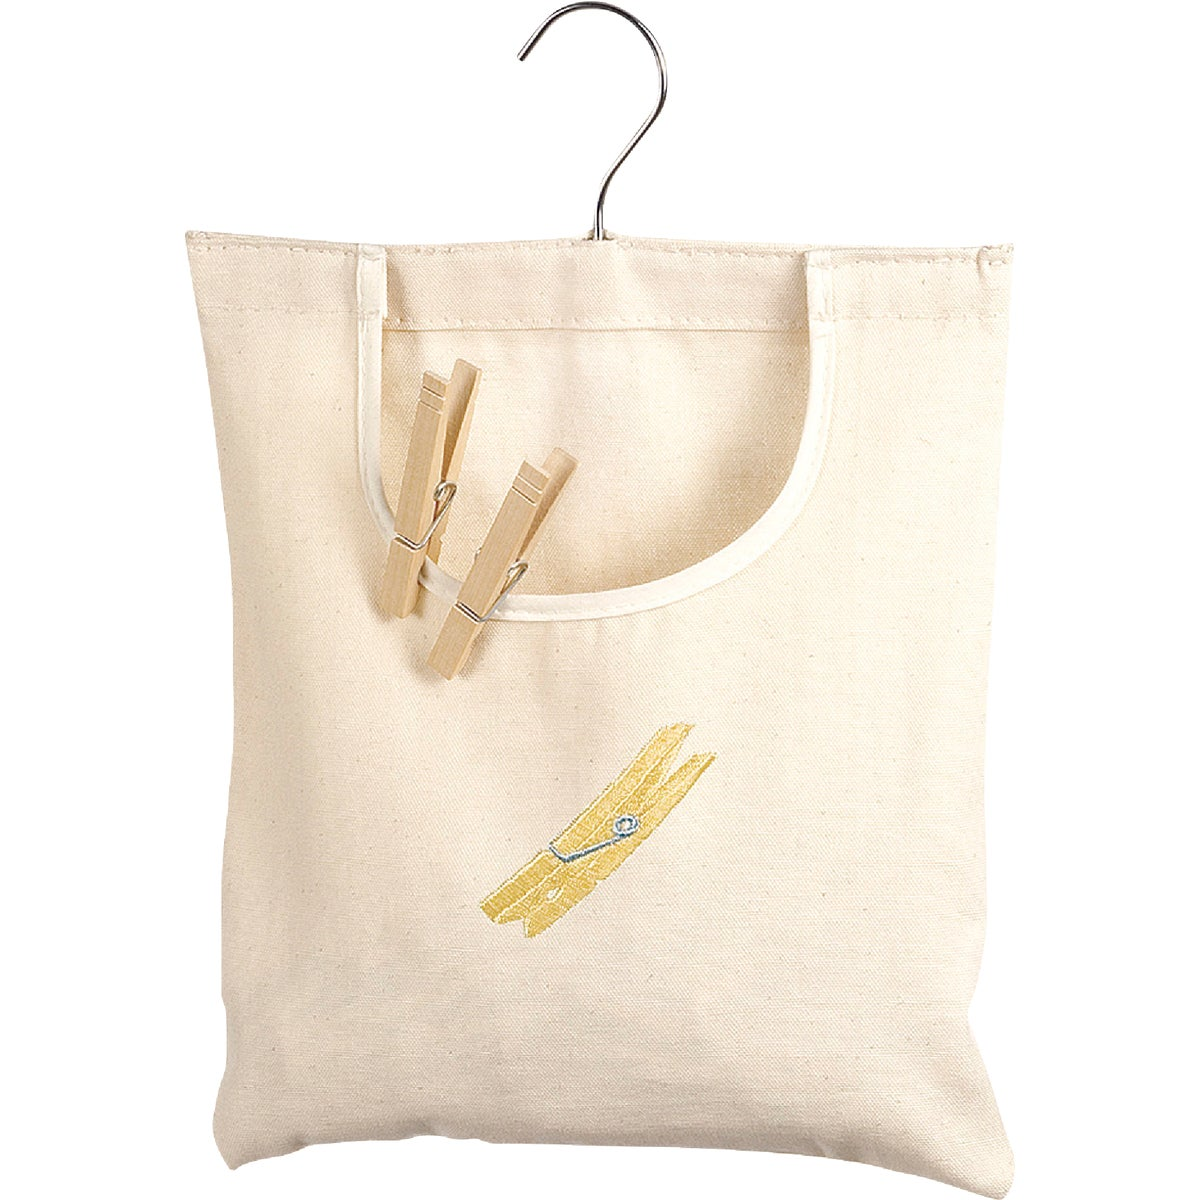 11X15 CLOTHESPIN BAG - 1220214 by Homz  Seymour